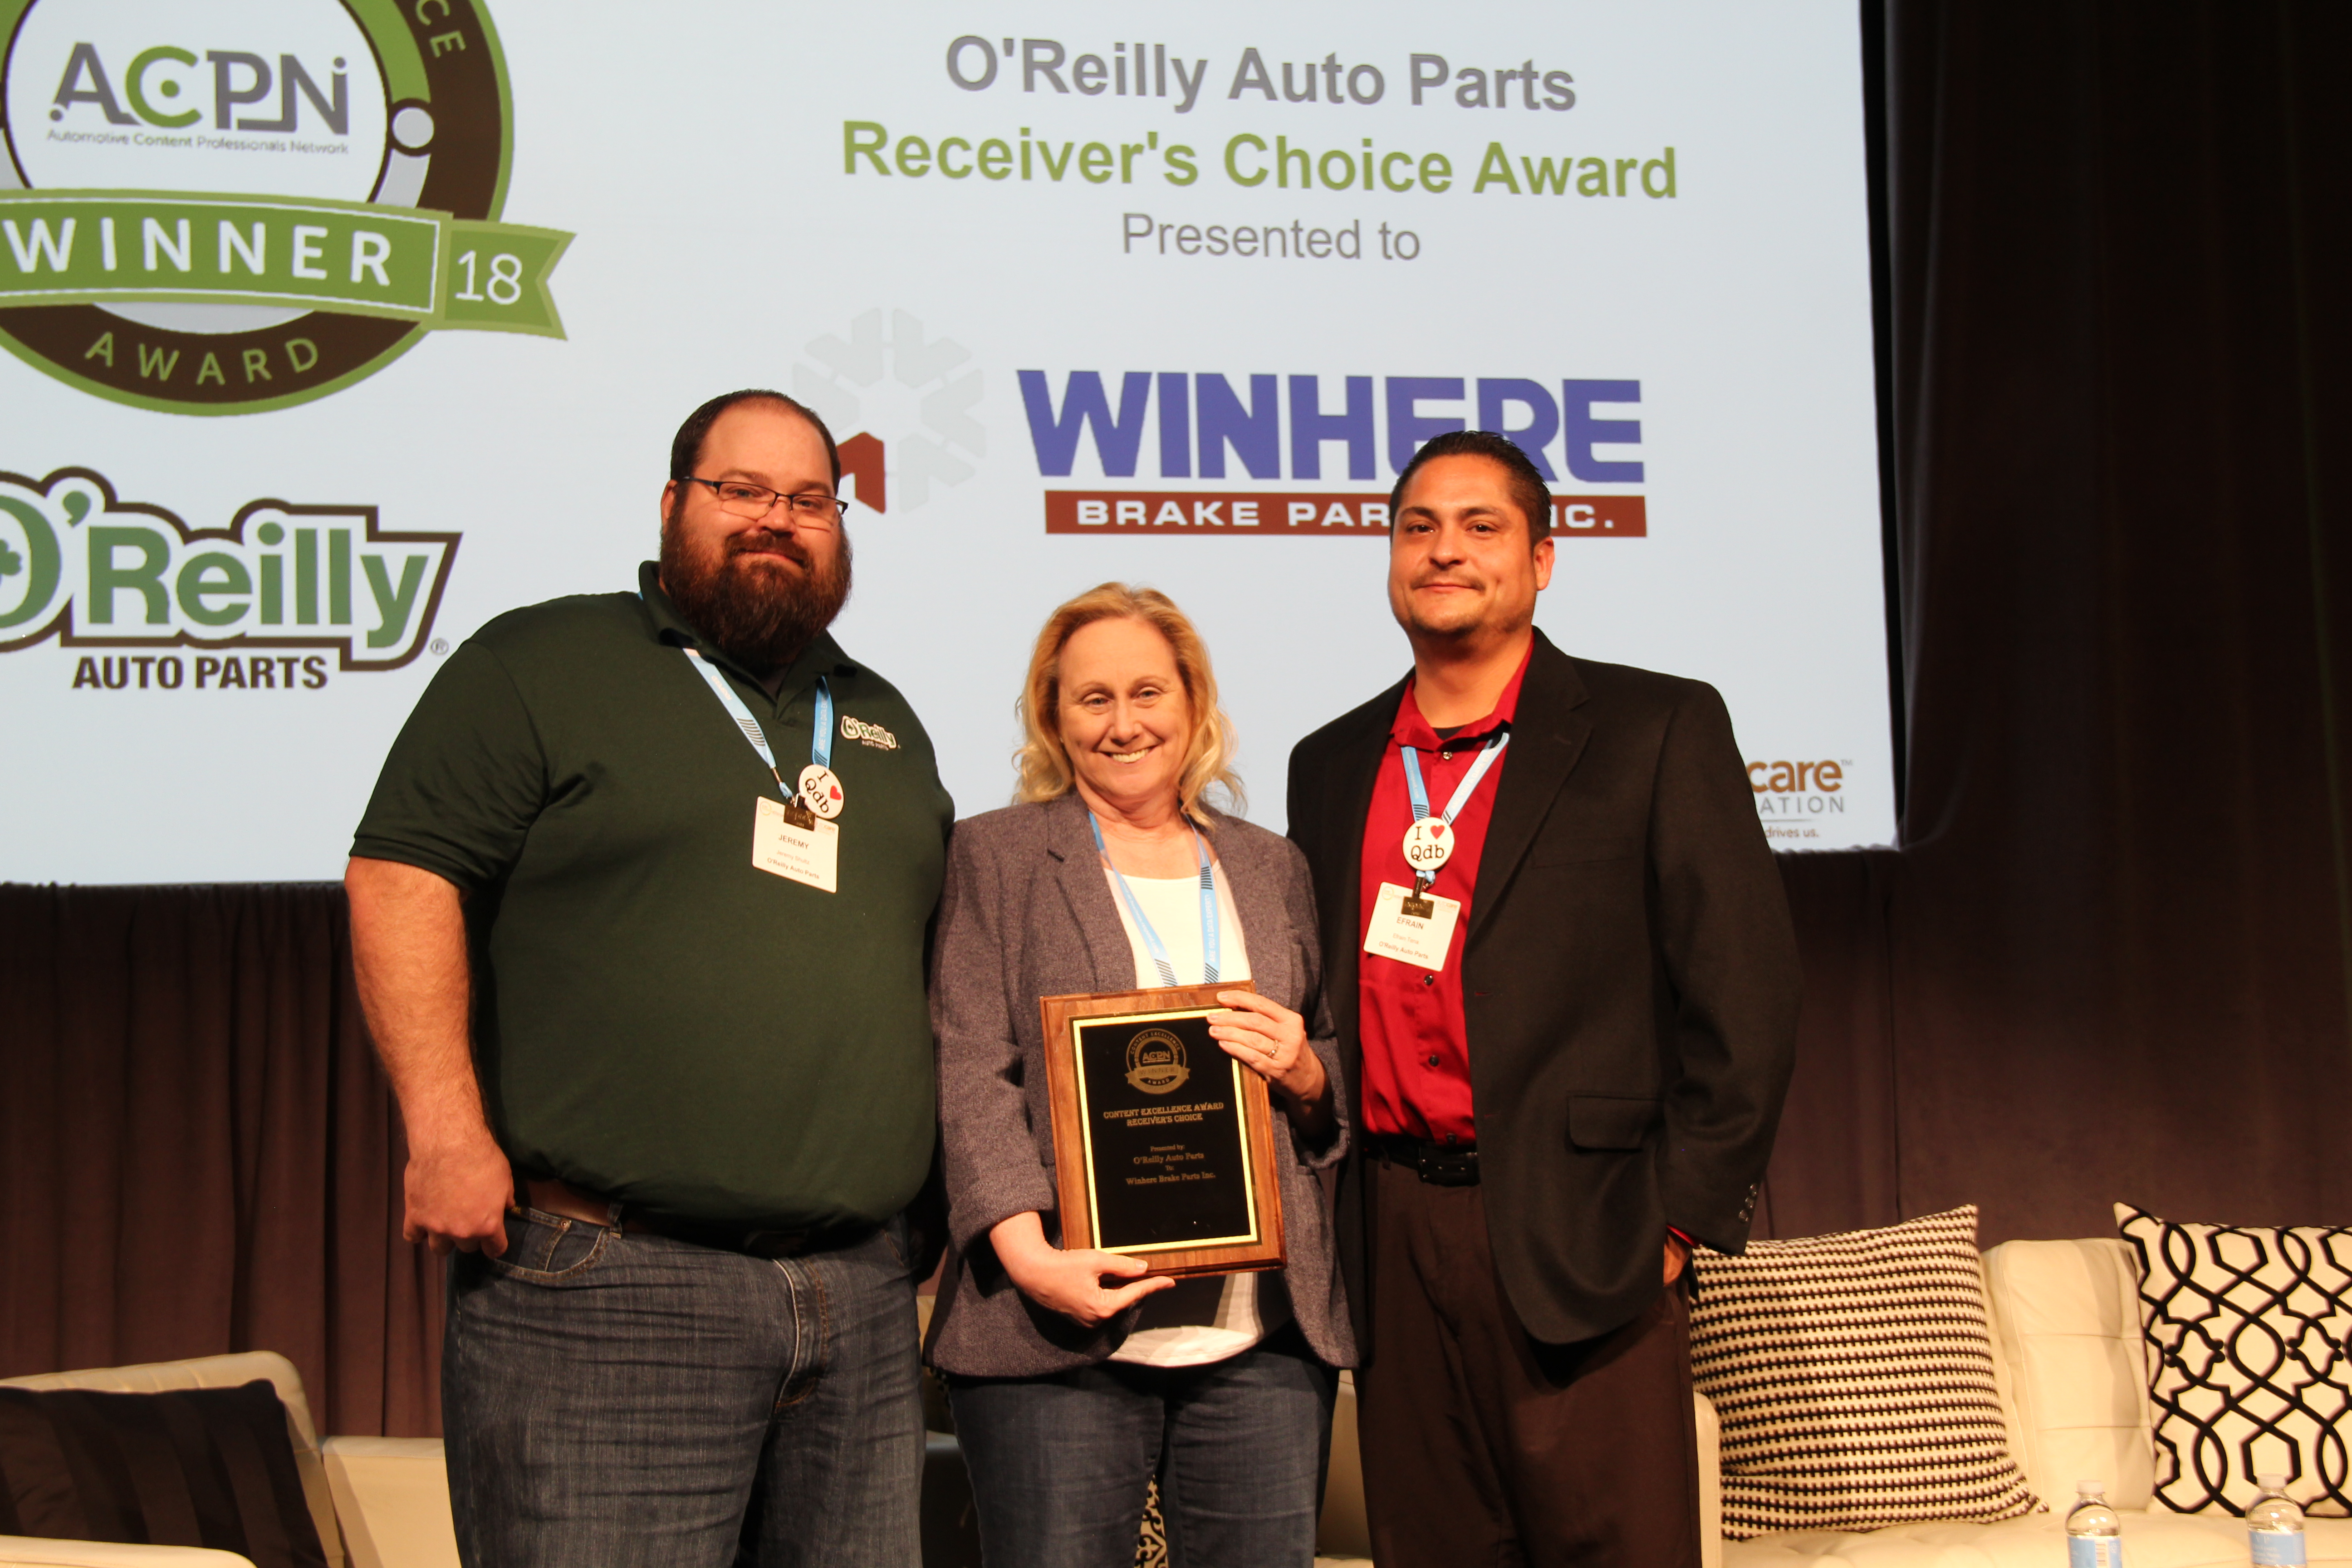 O'Reilly Auto Parts Honors Winhere Brake Parts